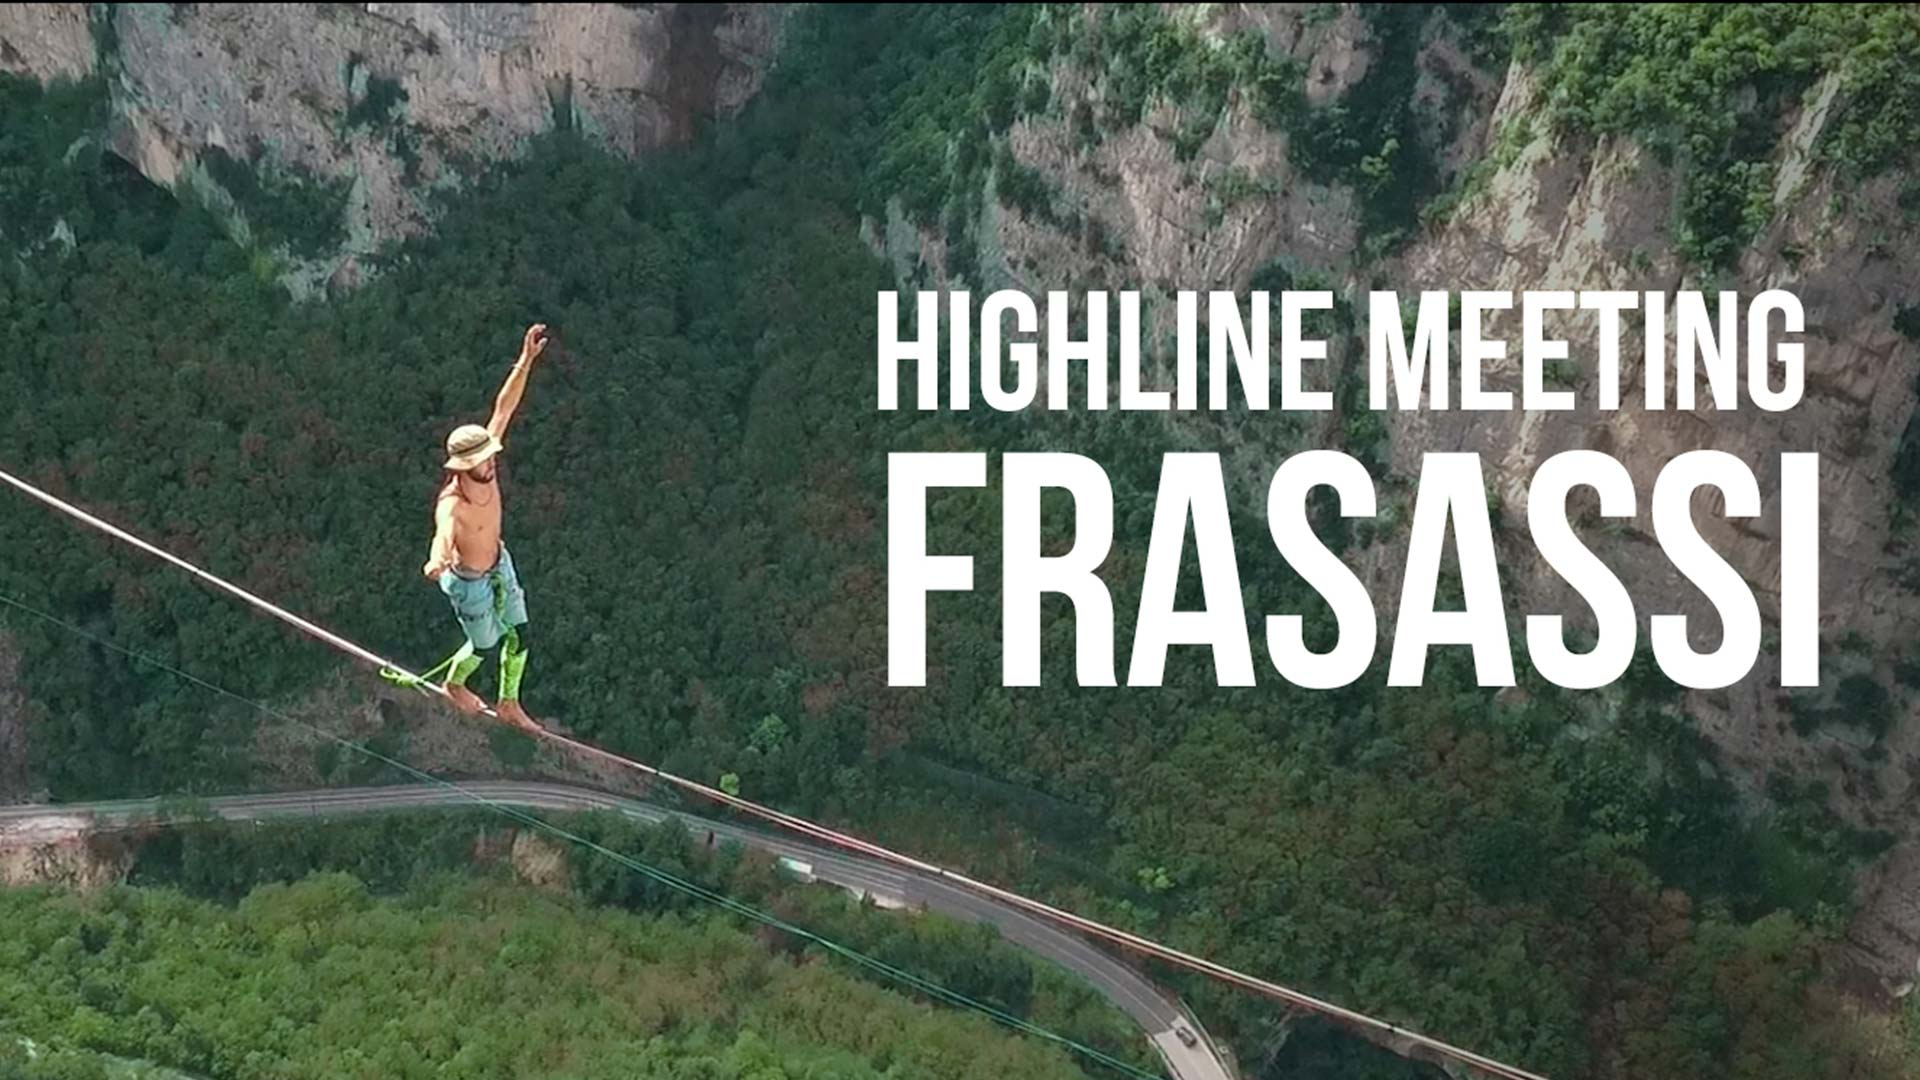 Highline Meeting Frasassi 2016 (meglio tardi che mai!)